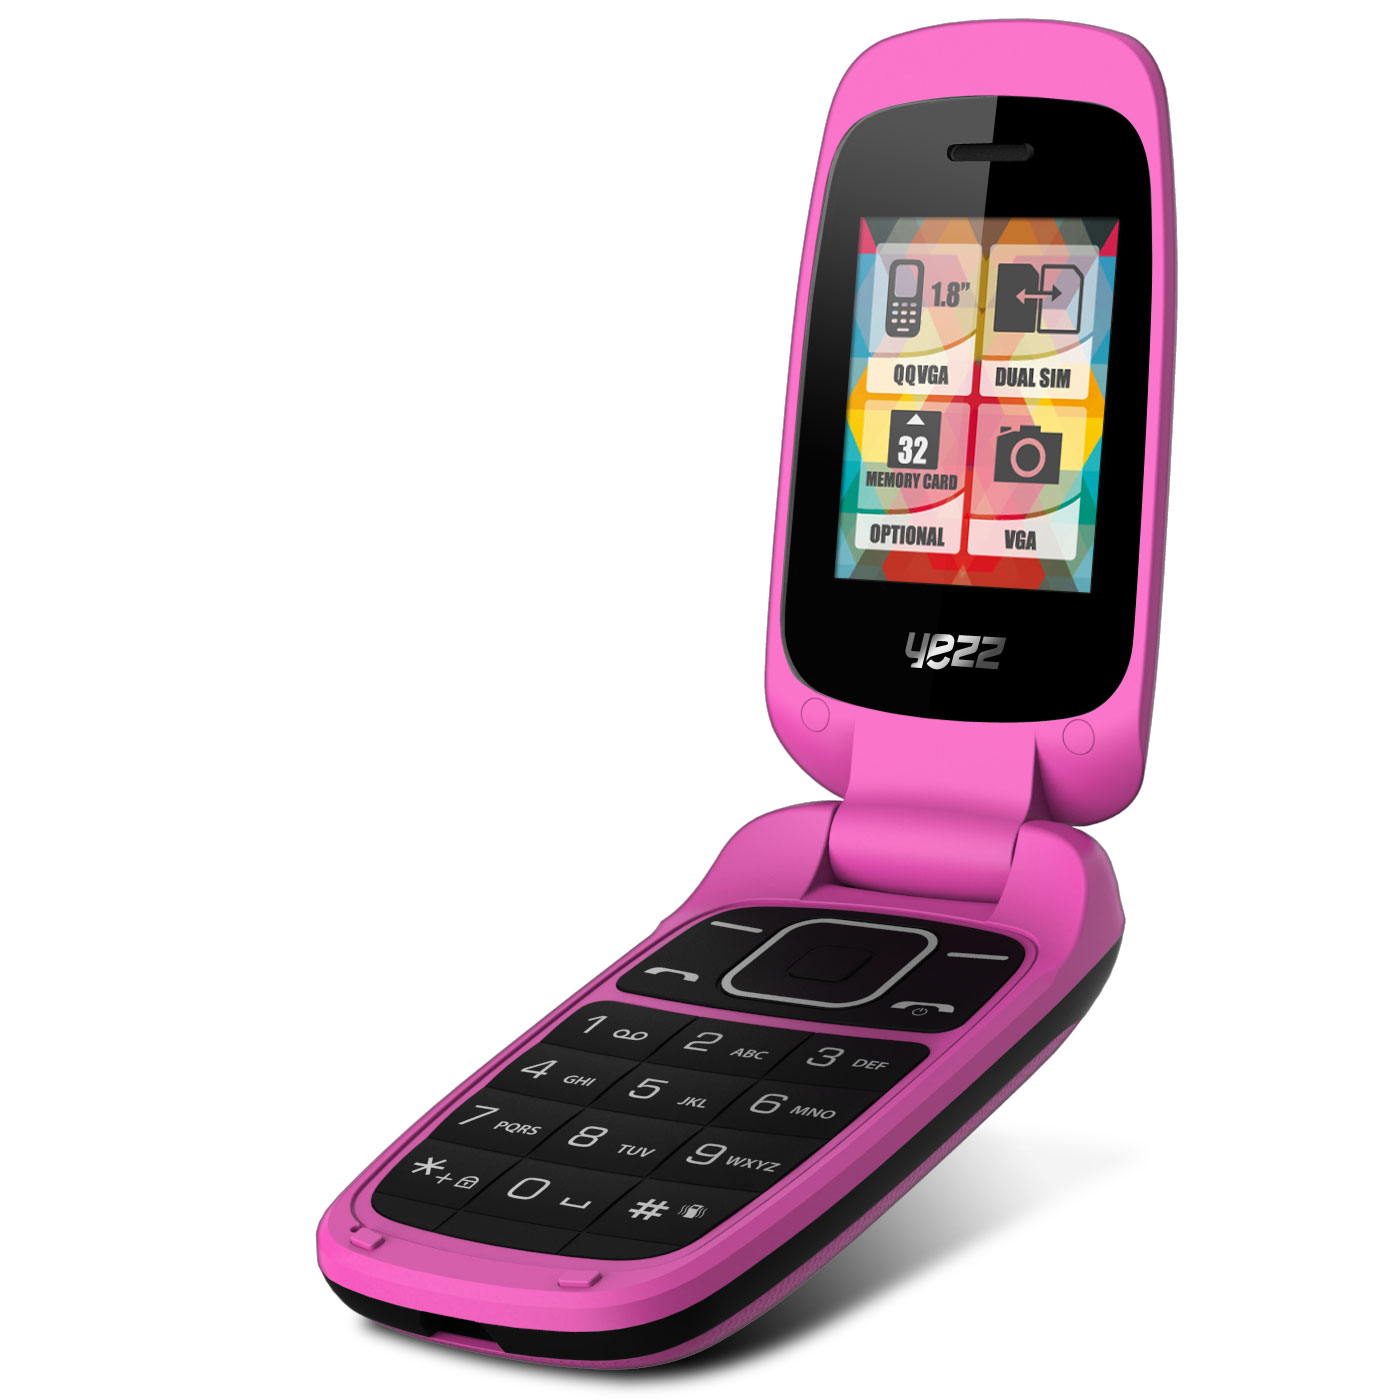 yezz classic c50 dual sim rose mobile smartphone yezz. Black Bedroom Furniture Sets. Home Design Ideas